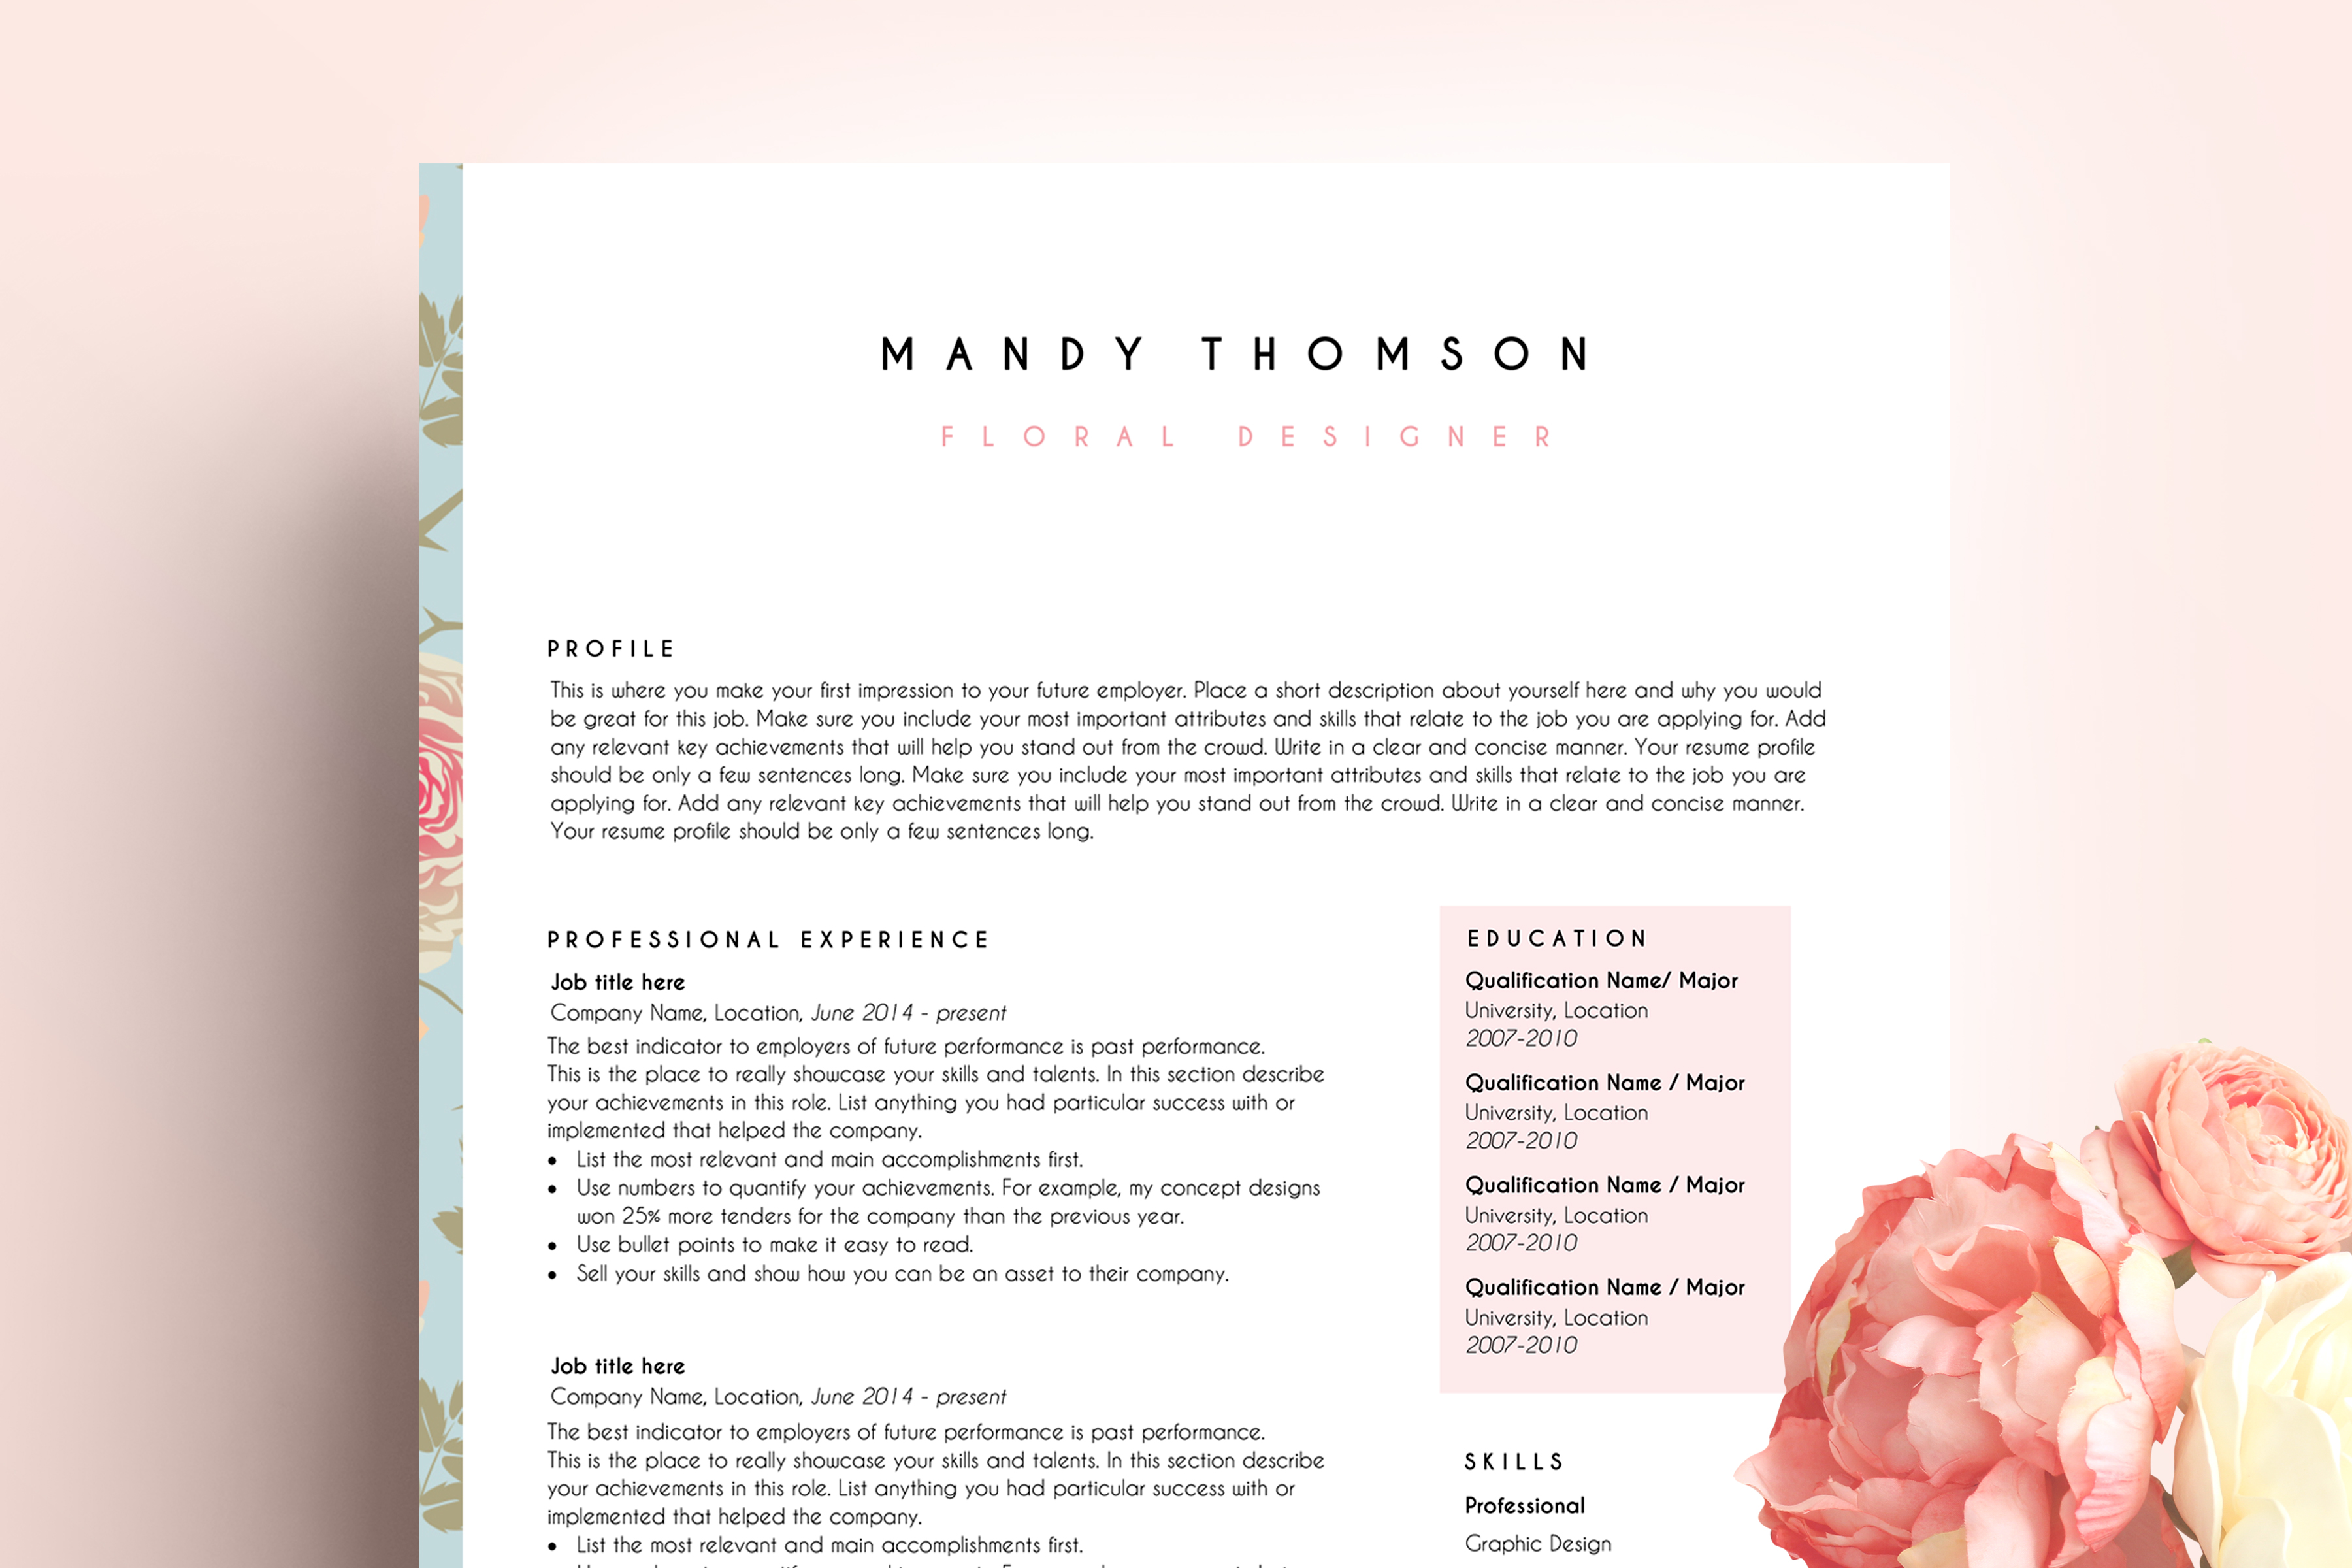 Creative Resume Template Word Floral Feminine Example Image 1